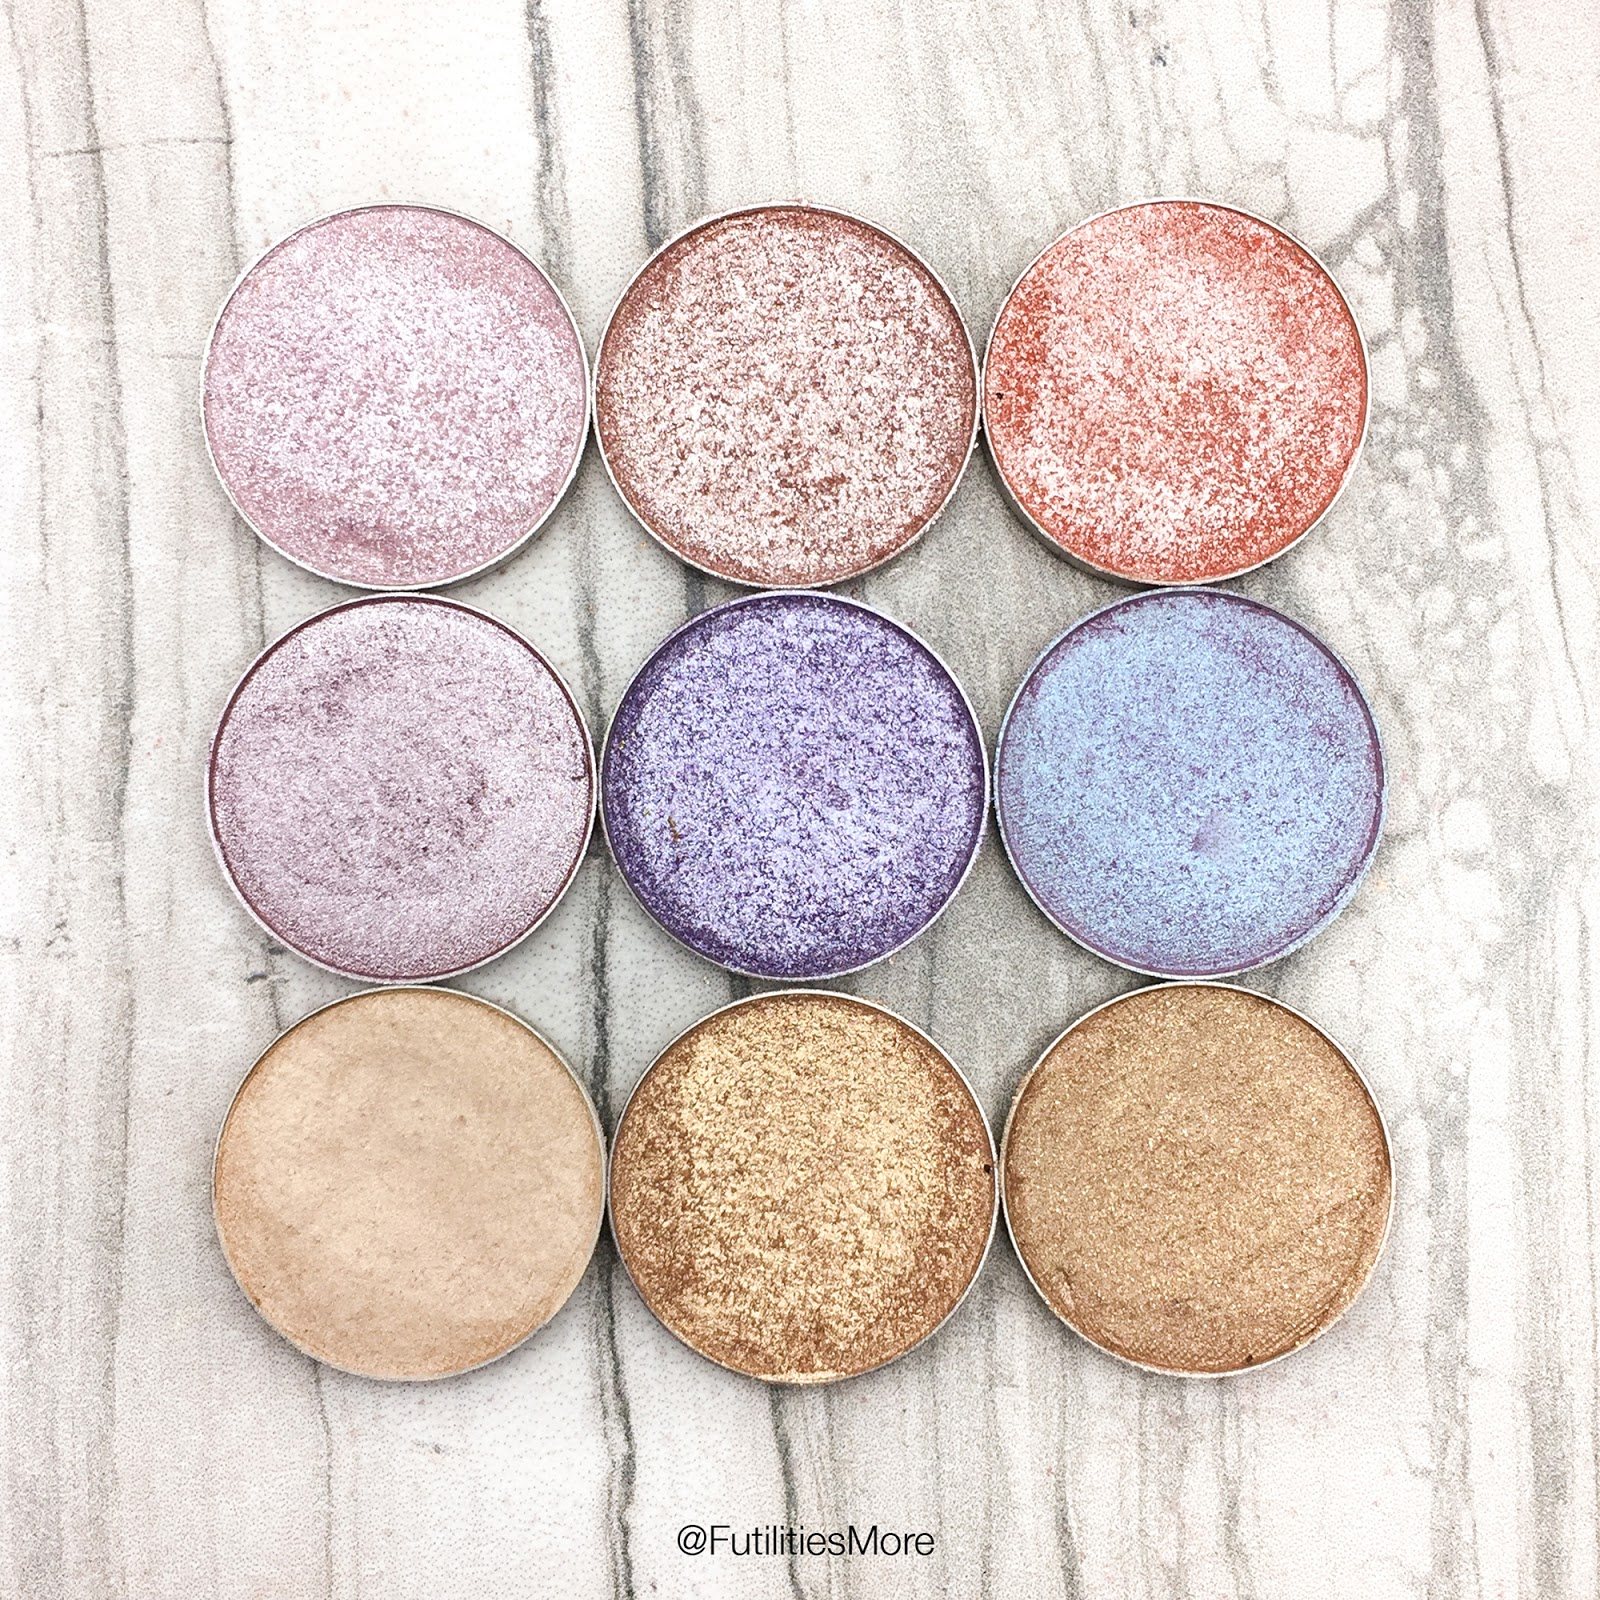 Futilities and More: Makeup Geek pastel shimmery ...